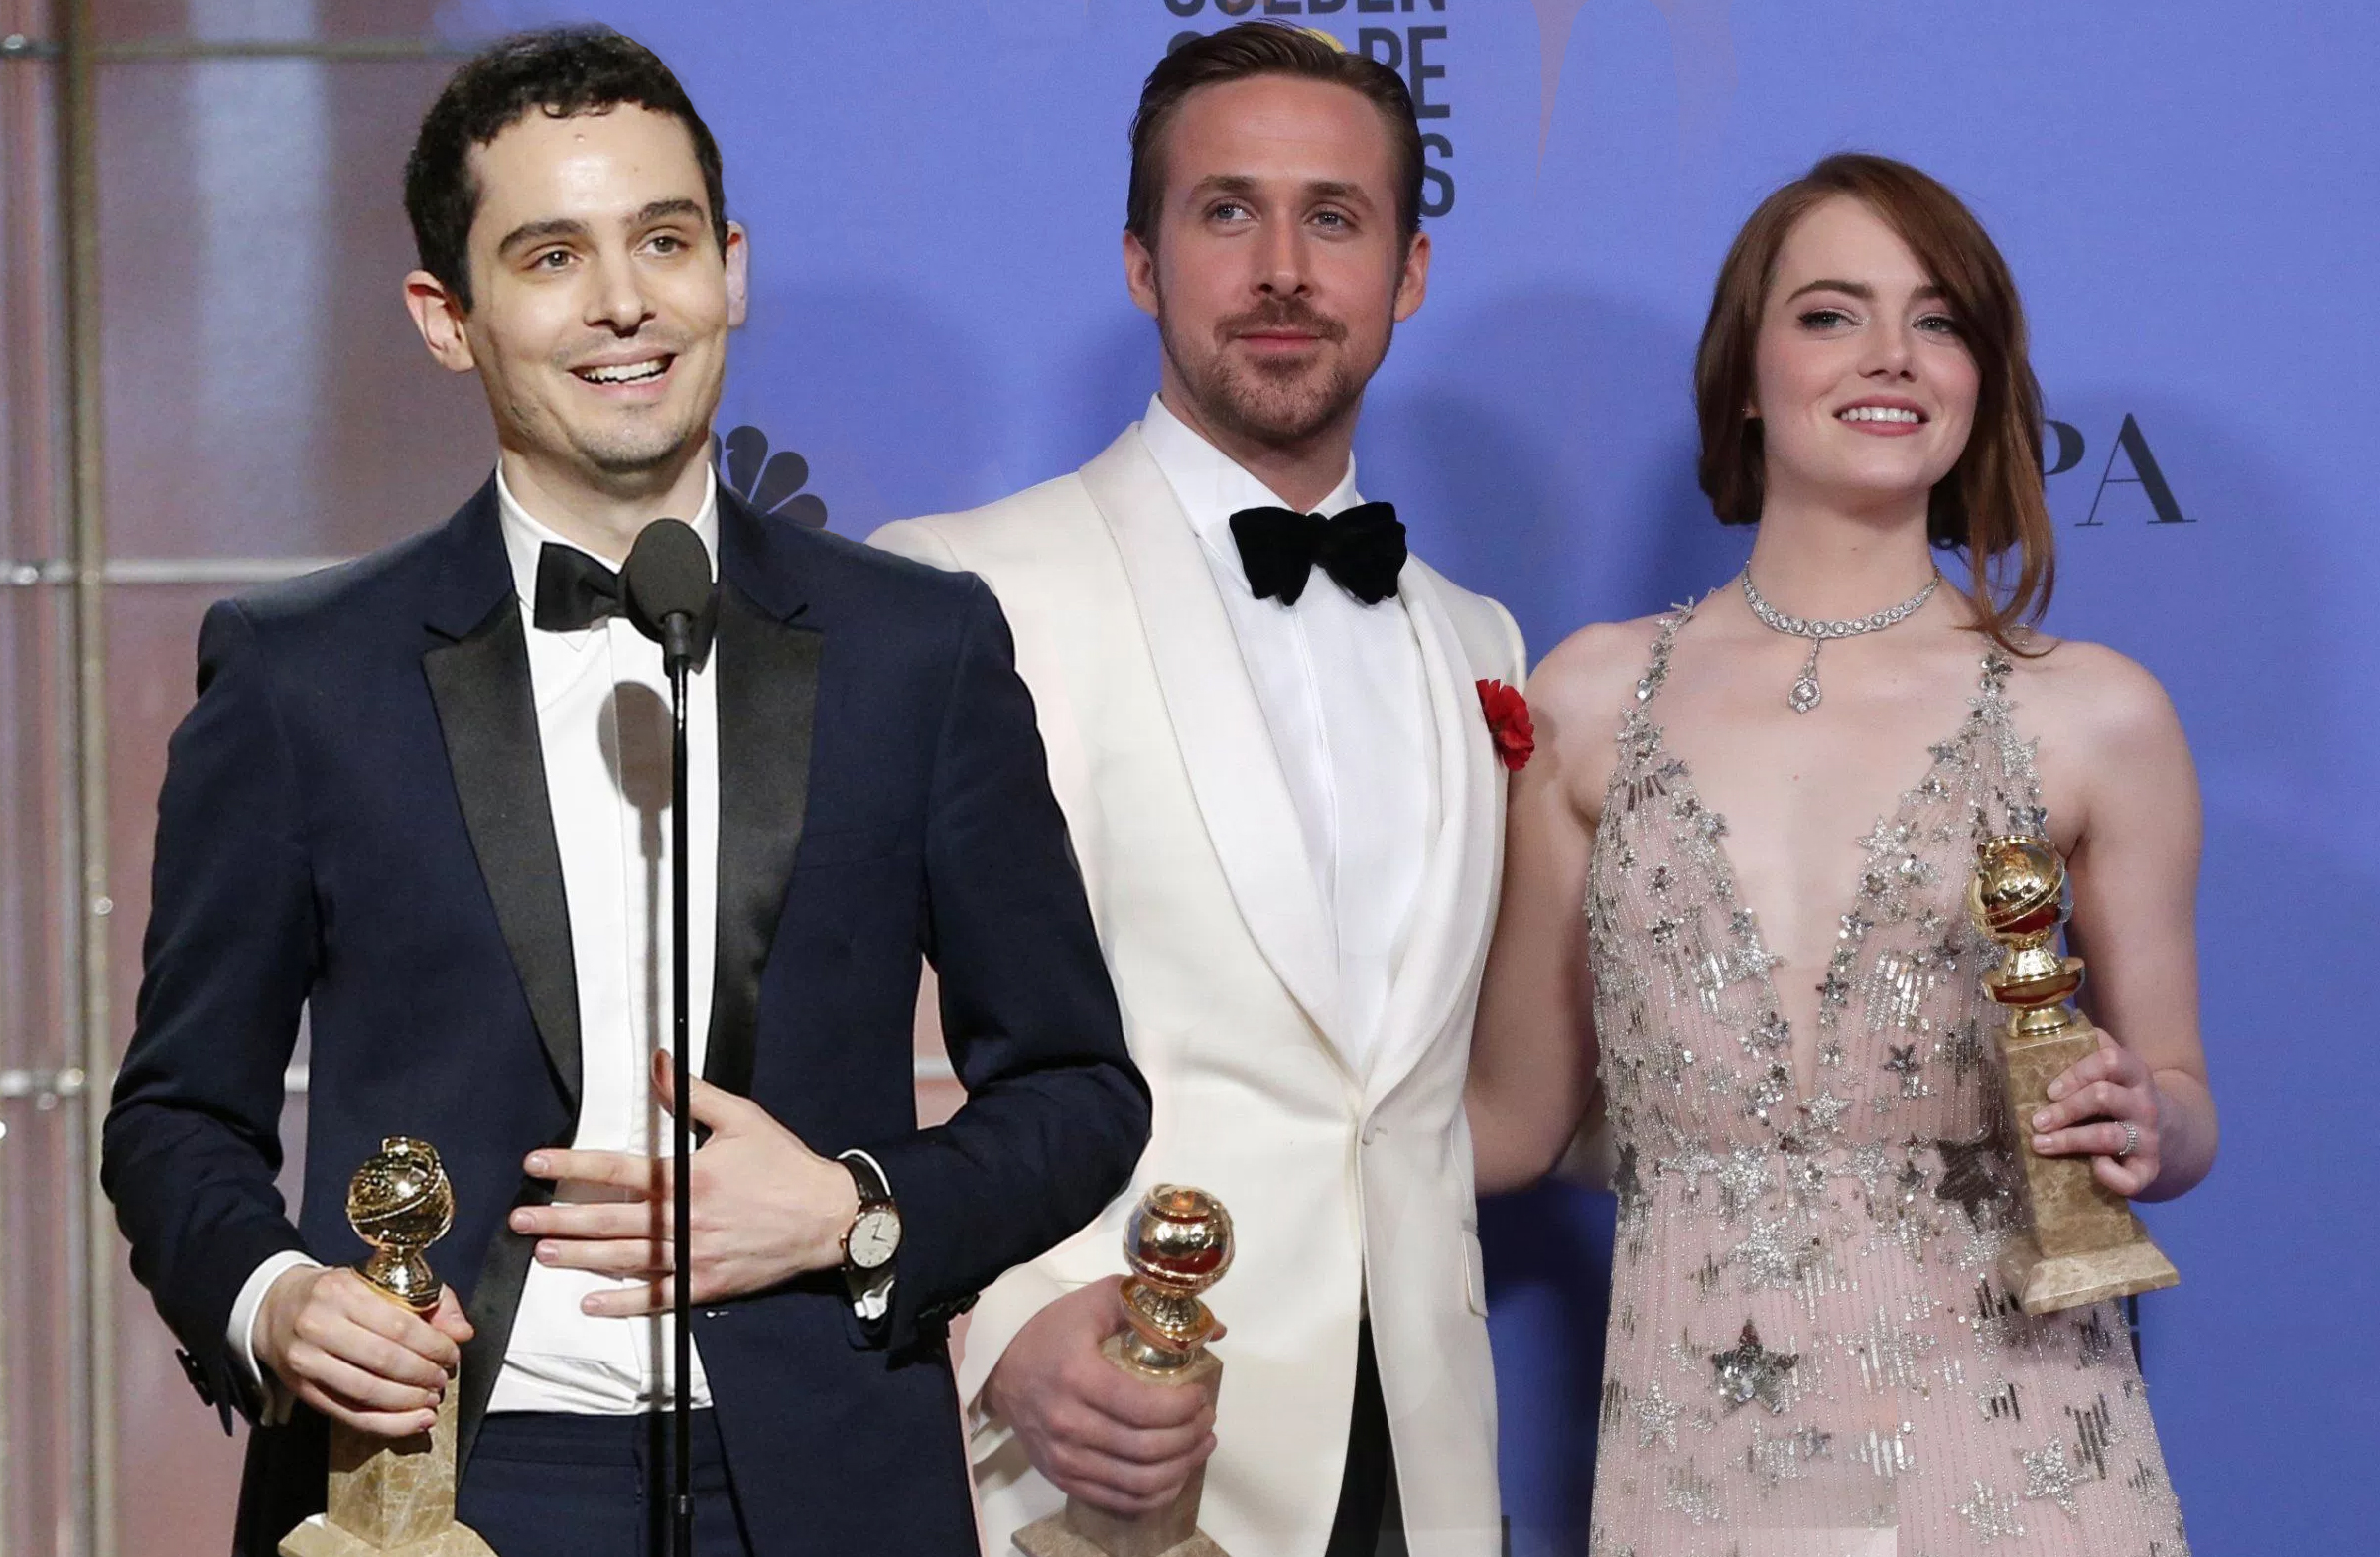 10 things we learnt from this year's Golden Globes